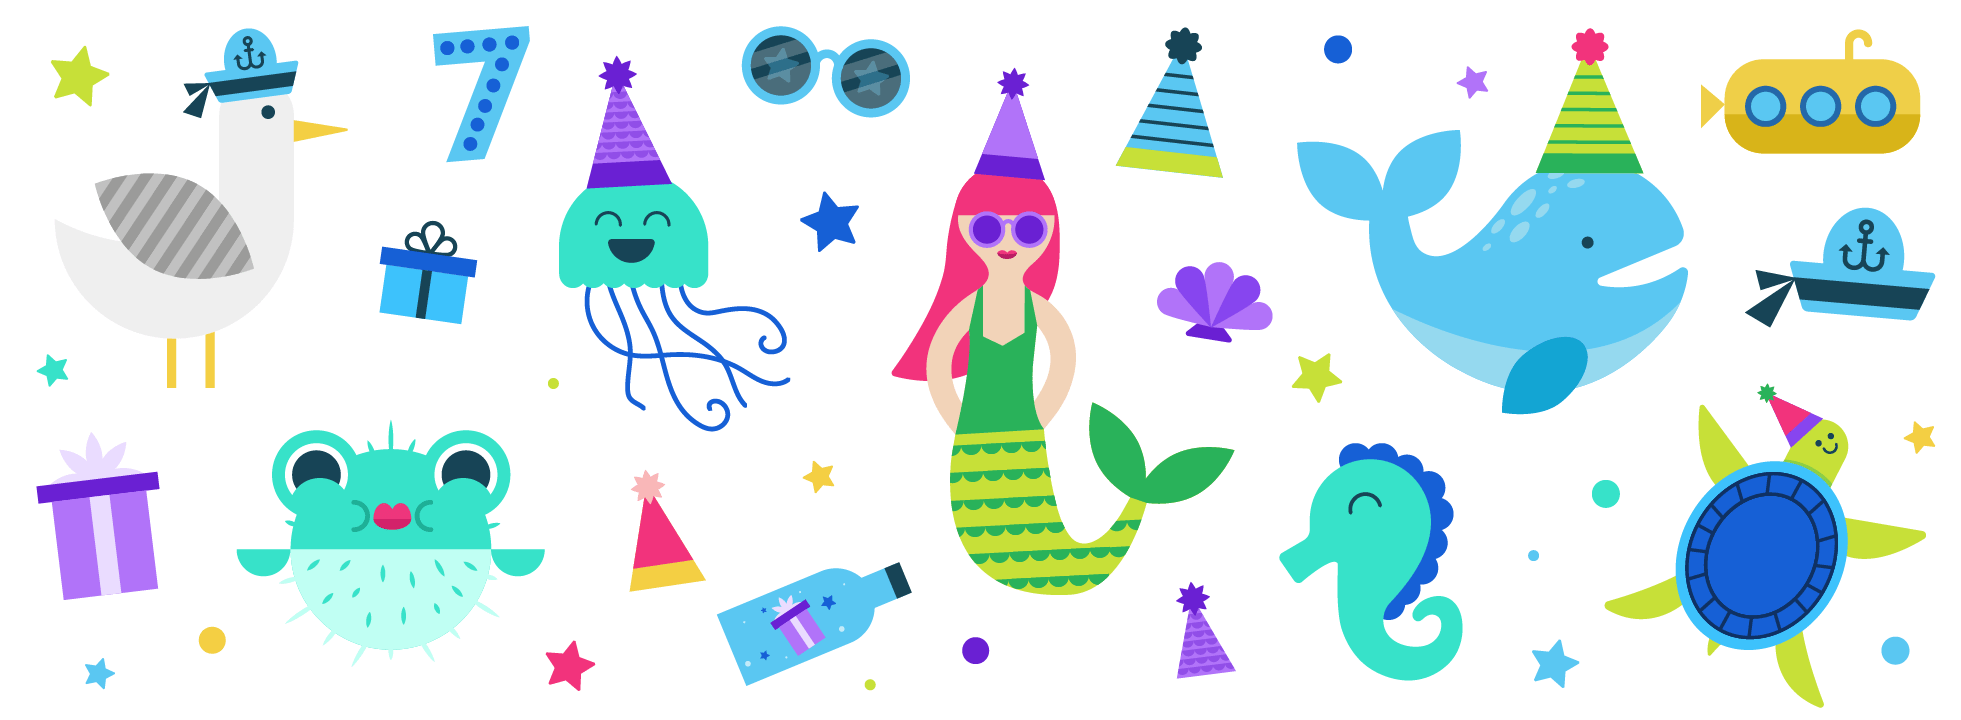 A designer on our team created the illustrations and a color palette, providing me with a head start.